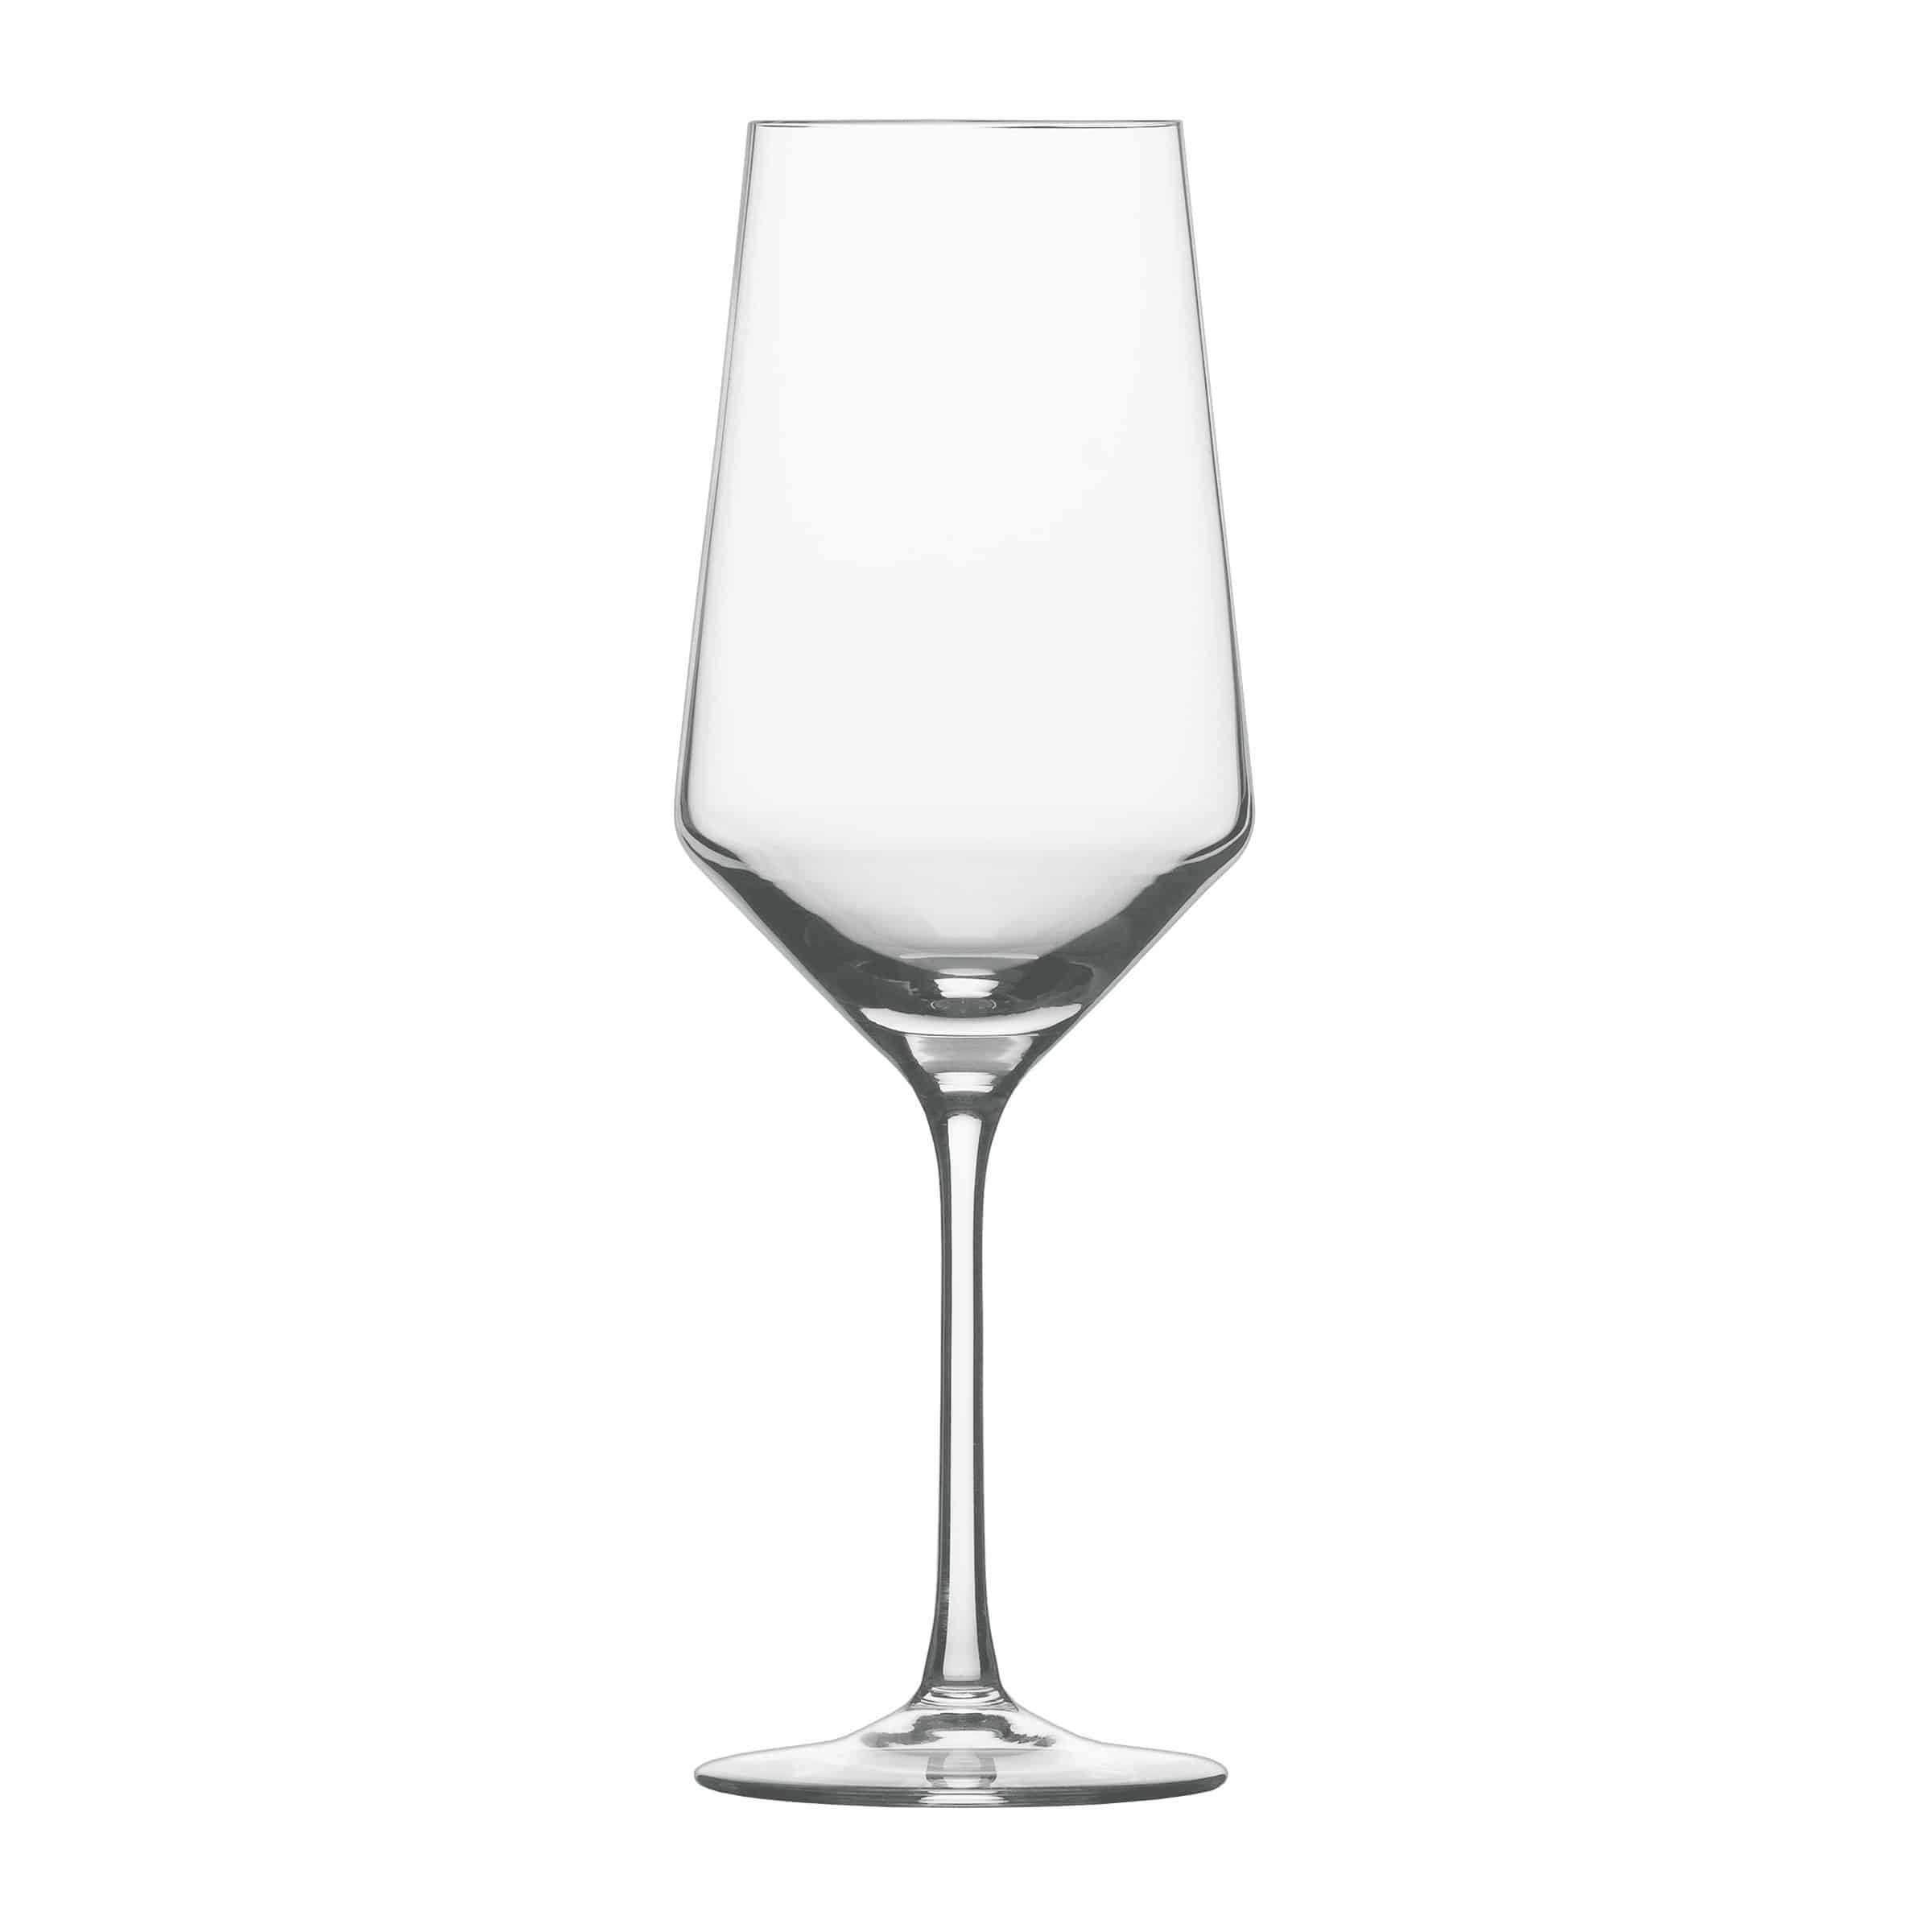 Schott Zwiesel Tritan Crystal Glass Stemware Pure Collection Bordeaux Red Wine Glass